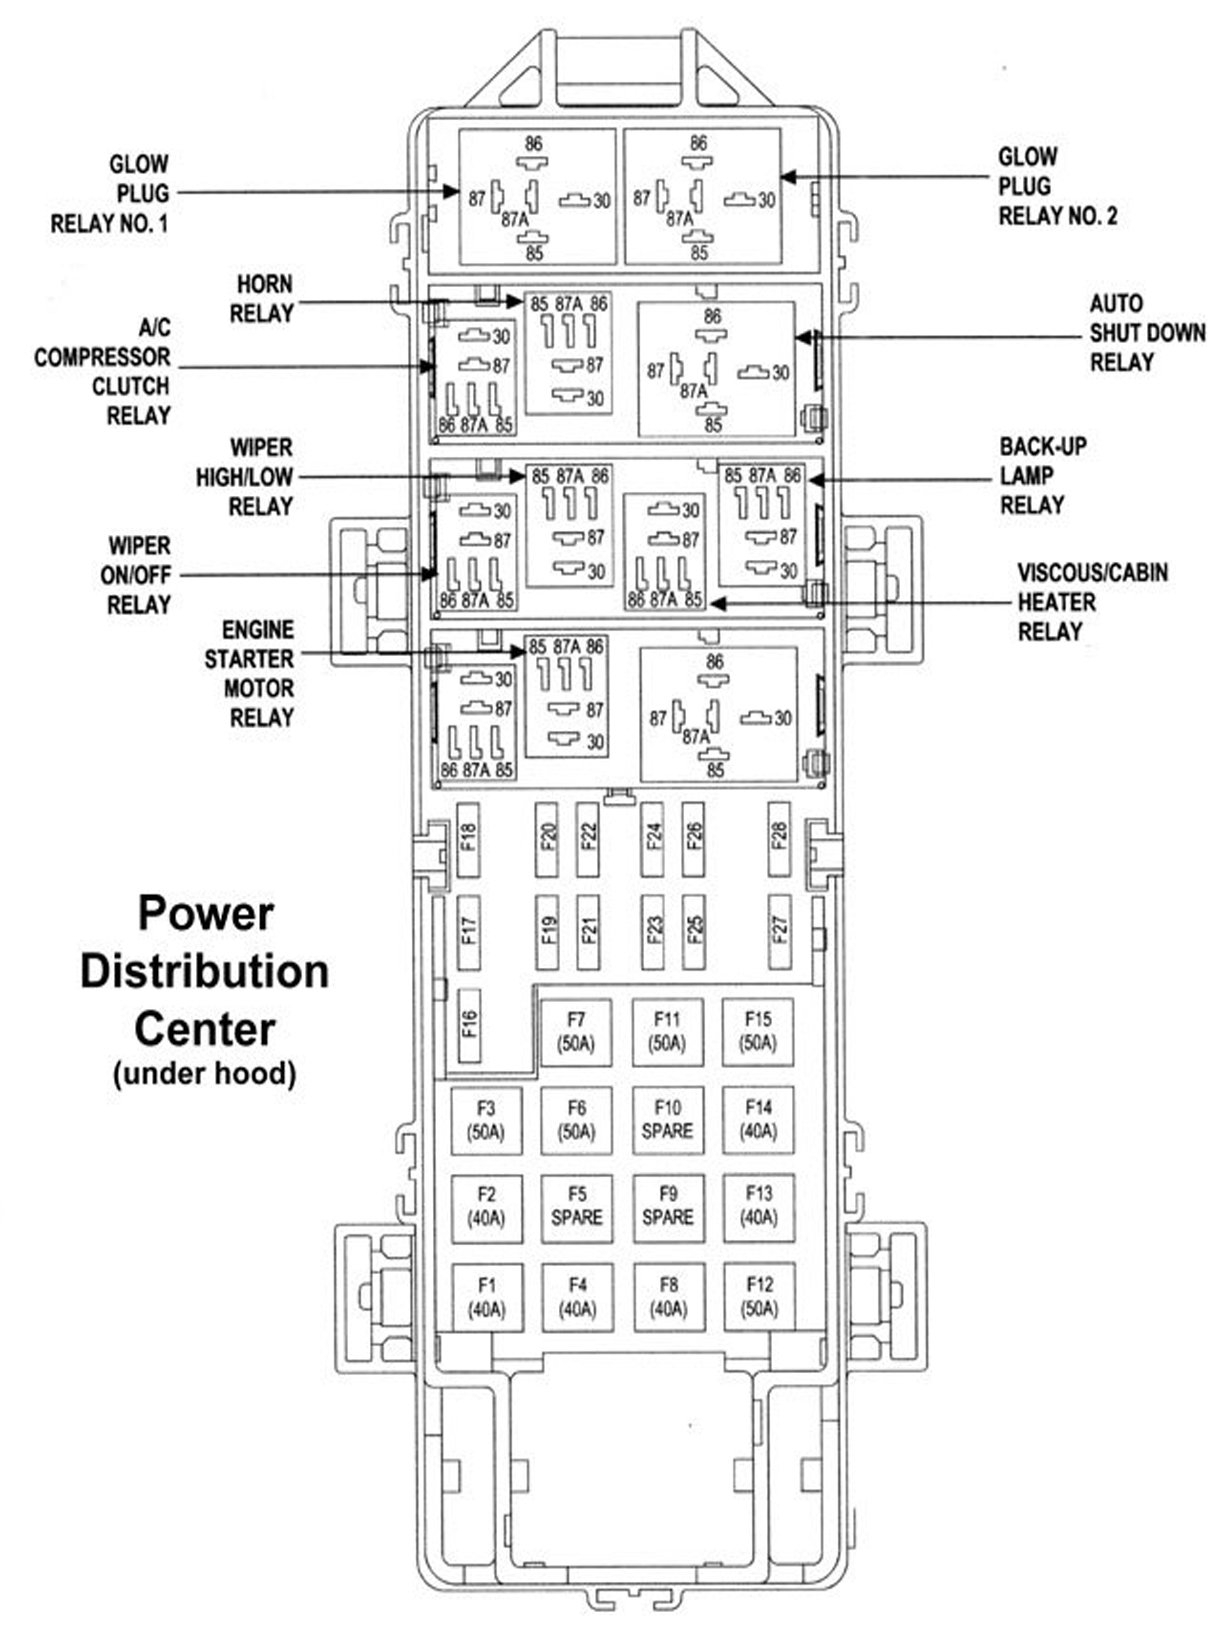 WE_6427] Laredo Fuse Box Map 1998 Jeep Grand Cherokee Schematic WiringRdona Gue45 Mohammedshrine Librar Wiring 101